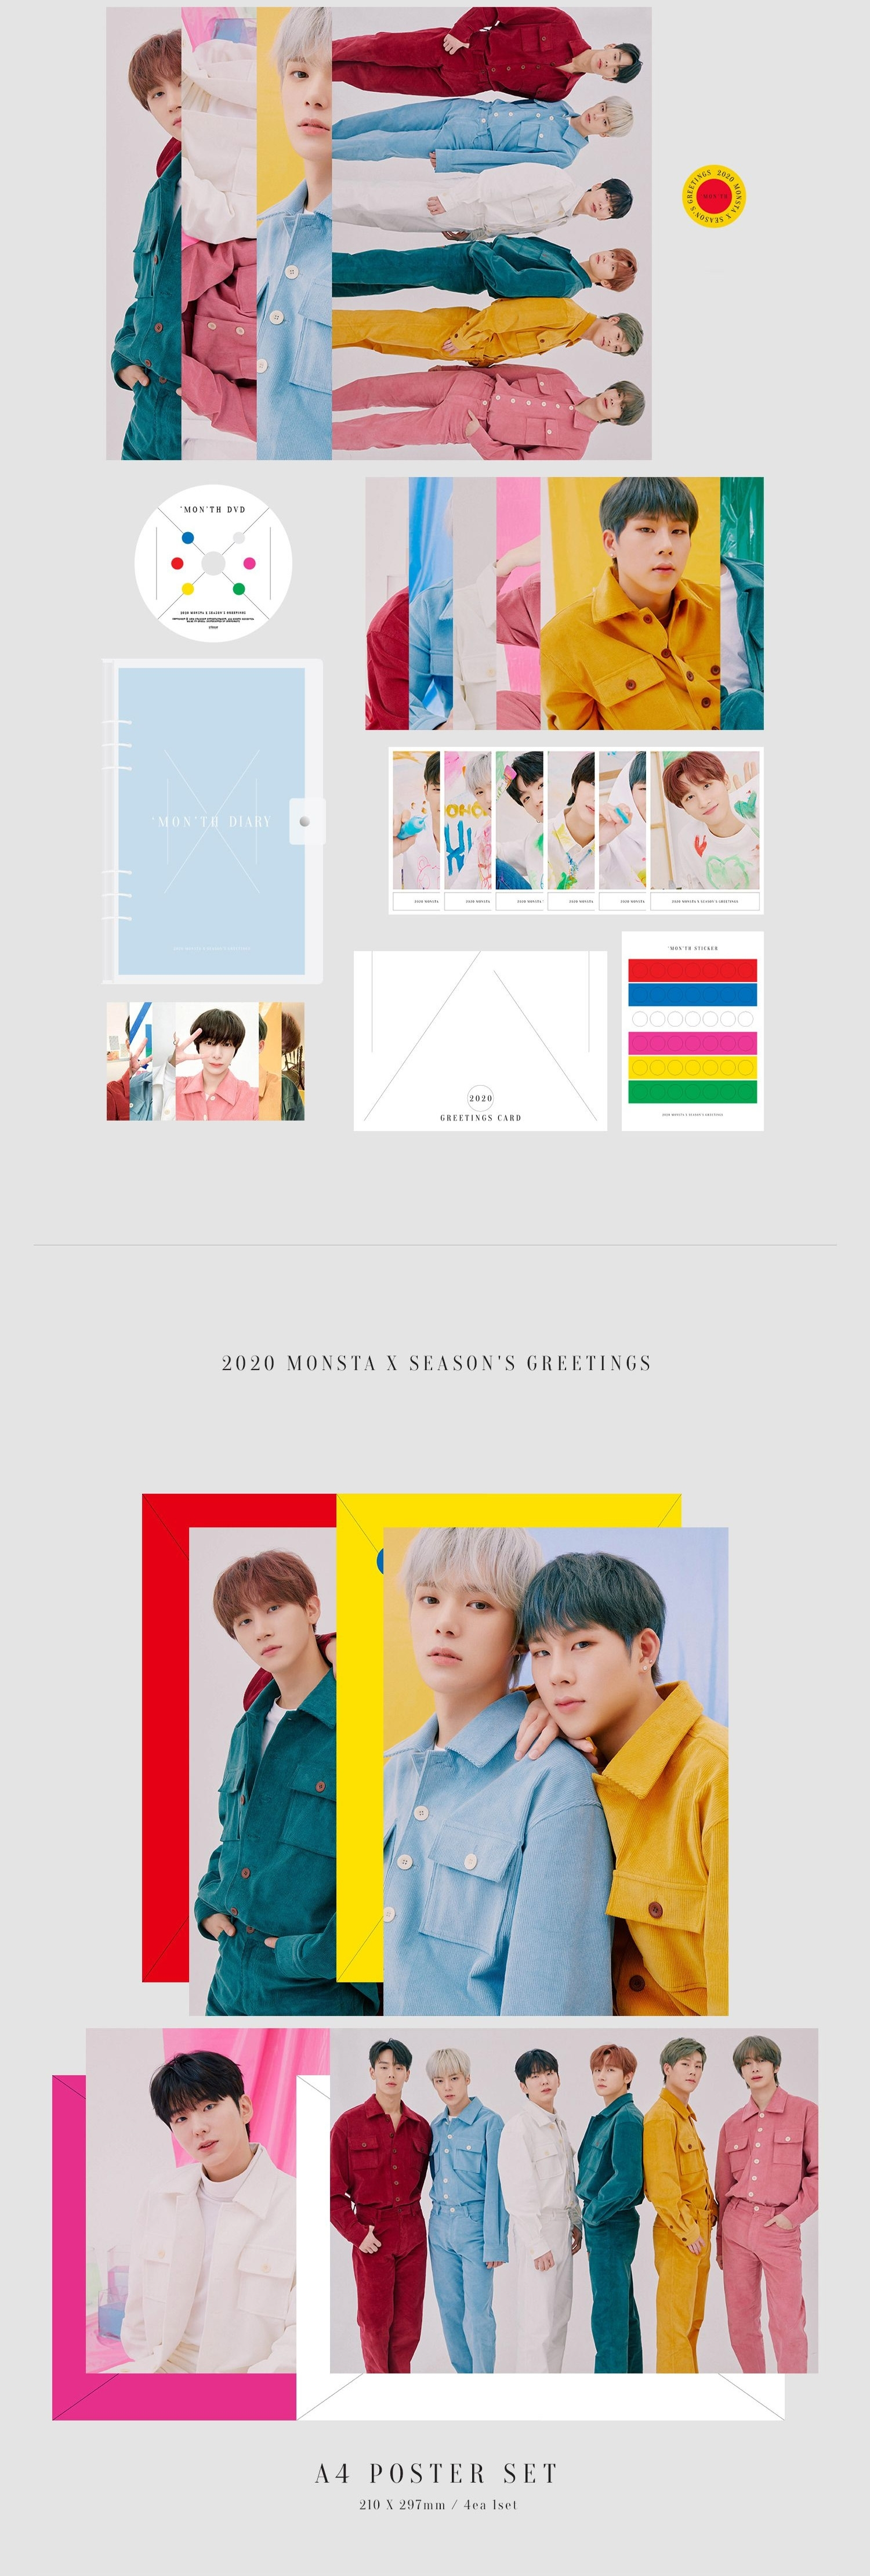 Monsta X 2020 Season's Greetings